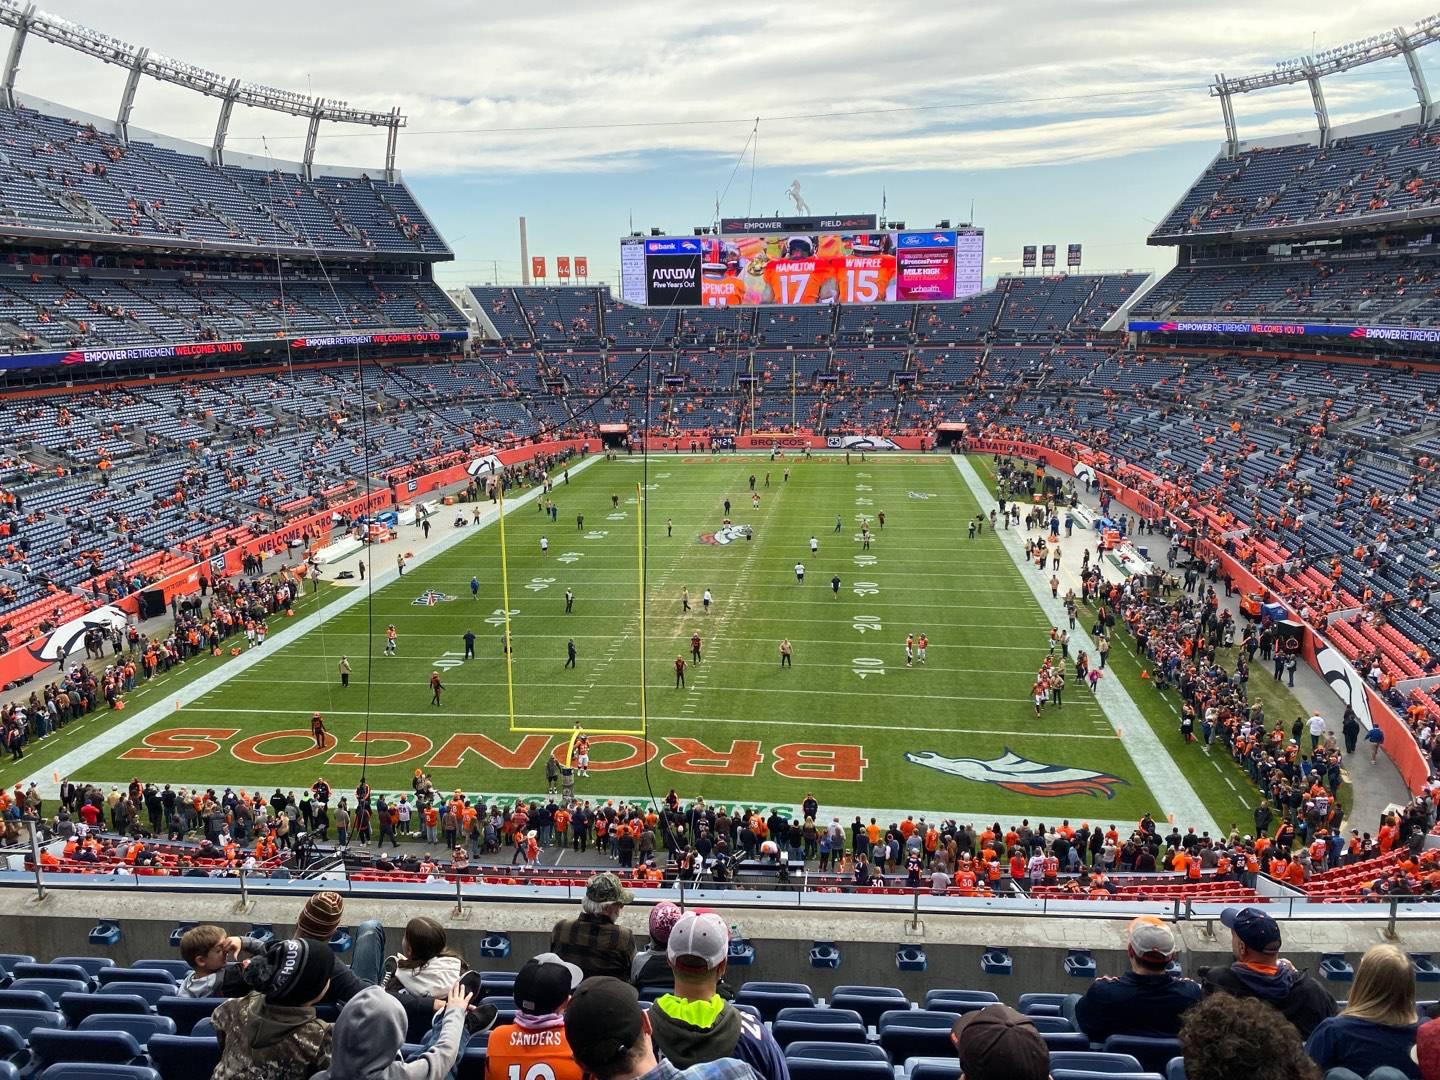 Empower Field at Mile High Stadium Section 322 Row 8 Seat 10